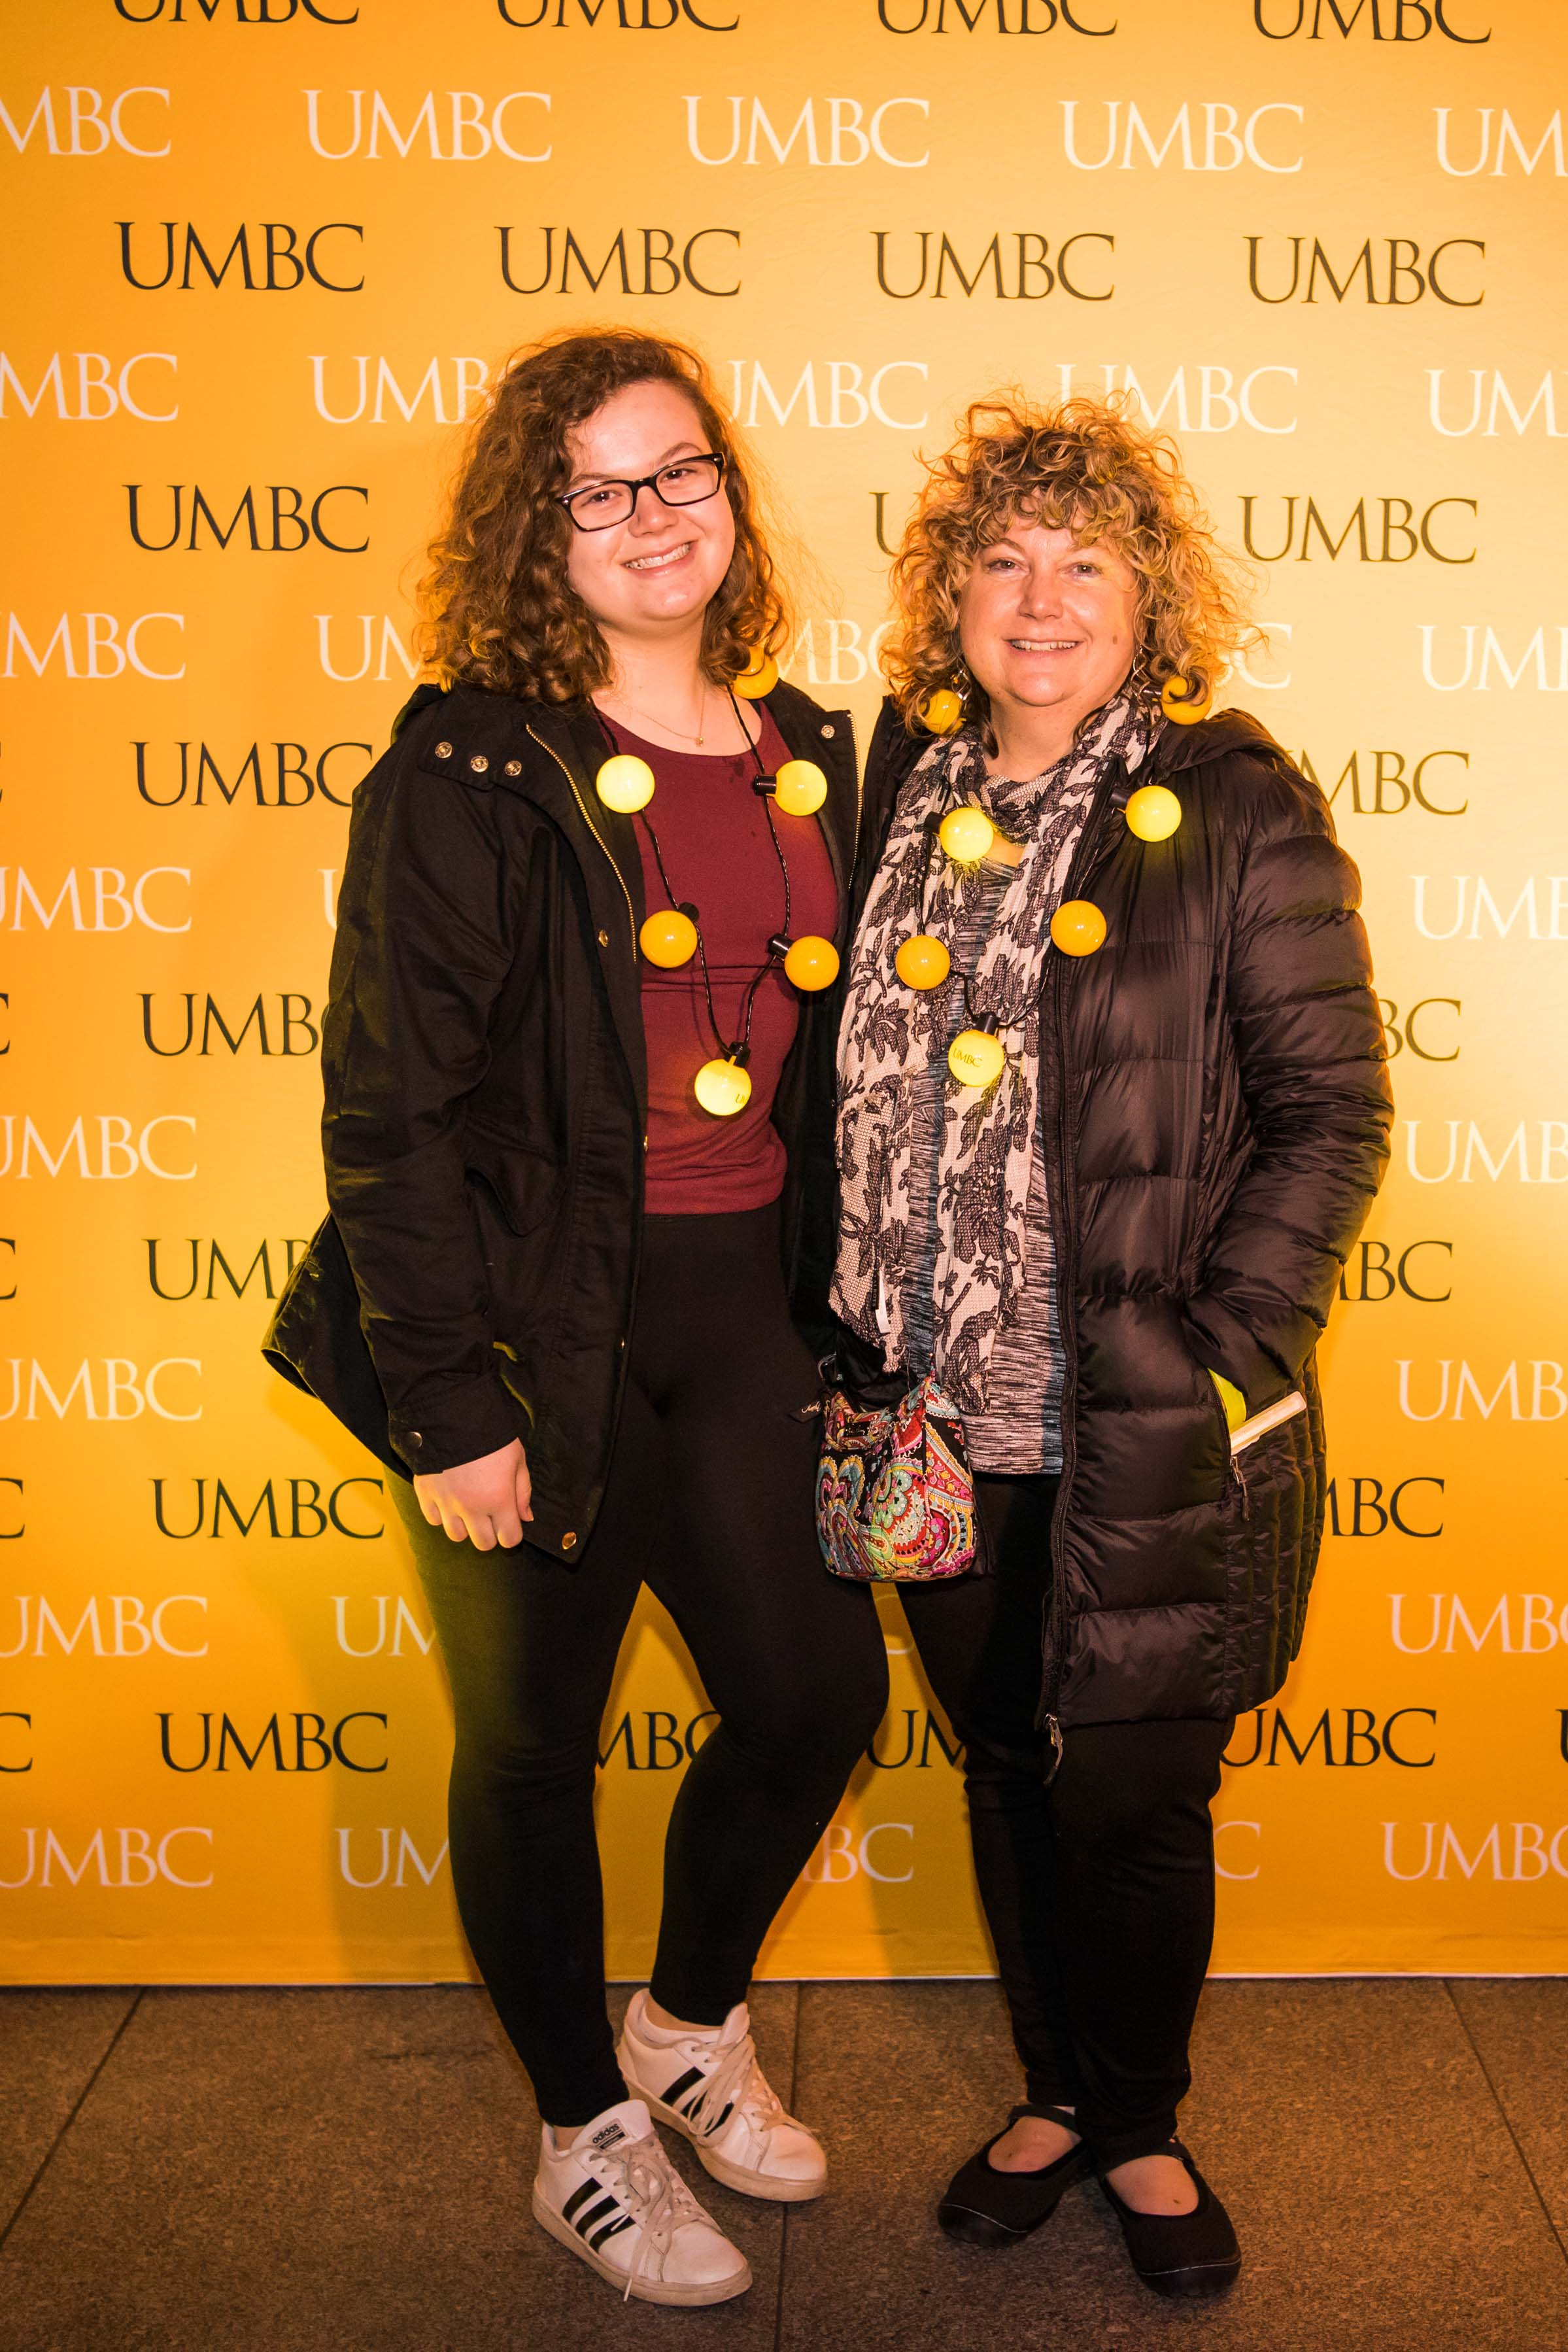 Two women pose in front of UMBC wall at alumni reception